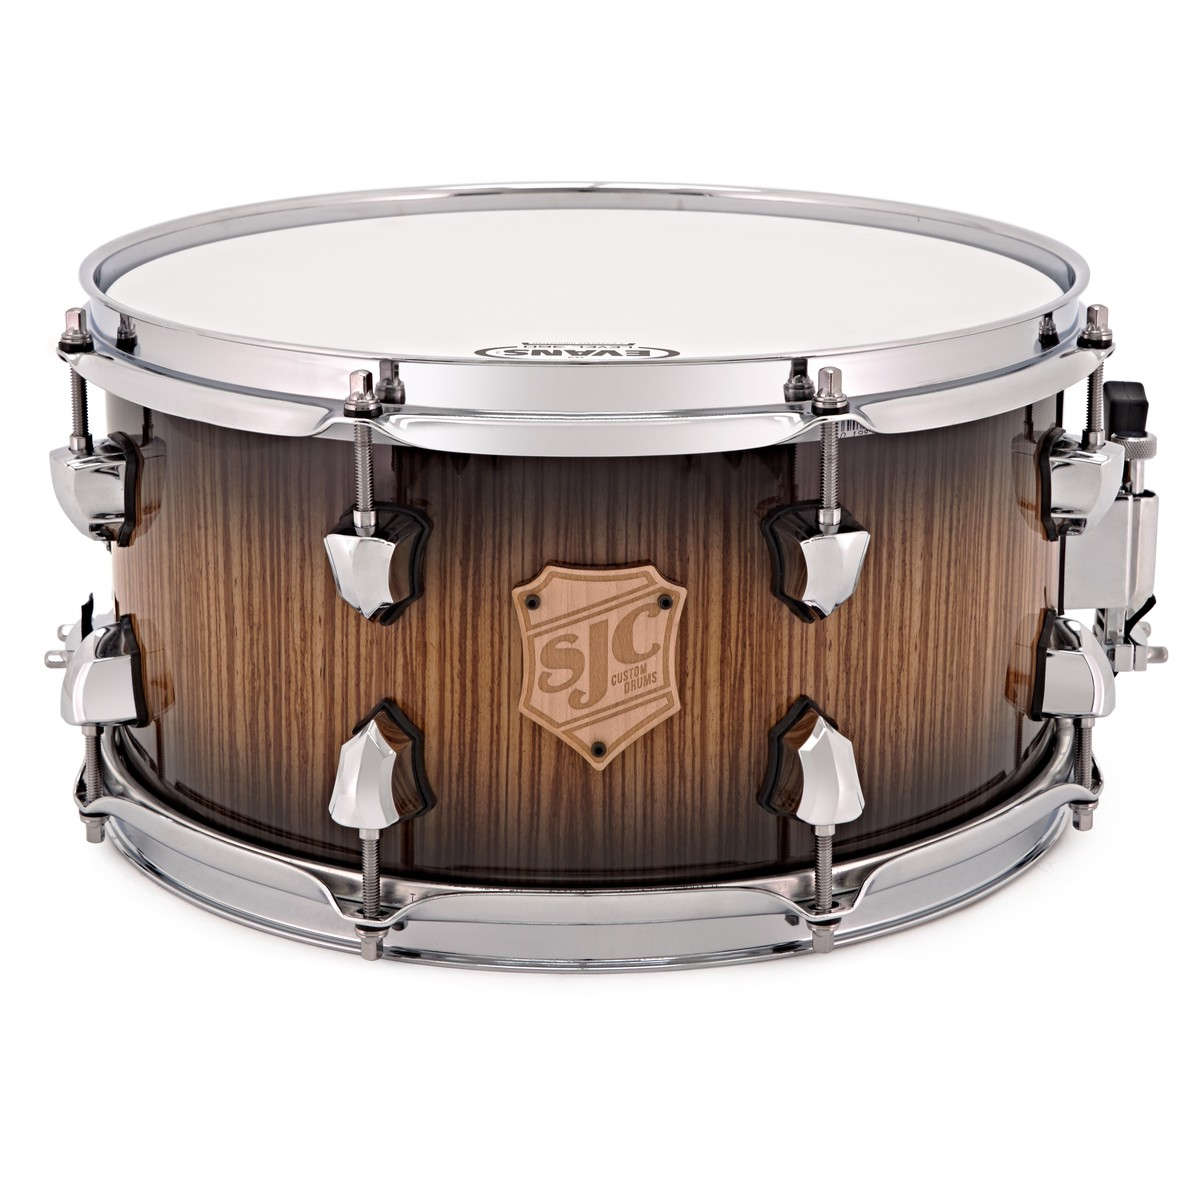 SJC Drums 13\'\' x 7\'\' Custom Snare Drum, Zebra Wood Outer Ply bei ...